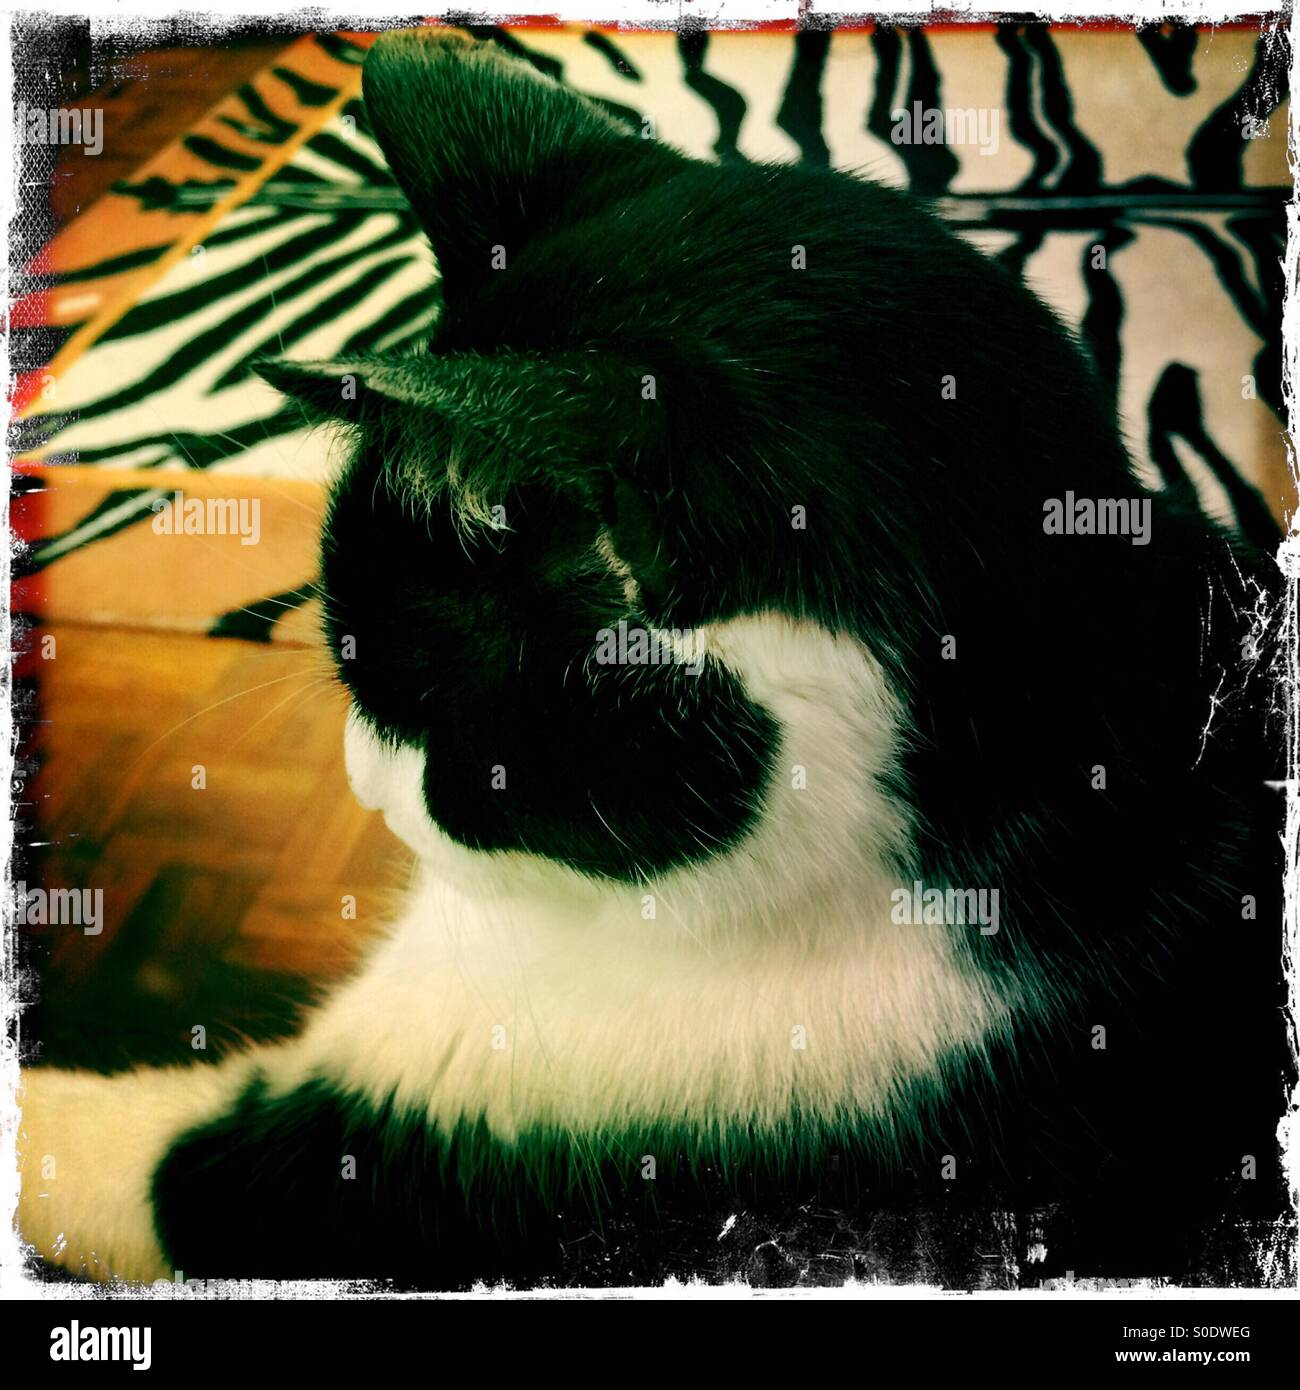 Black and white cat and black and white rug. - Stock Image